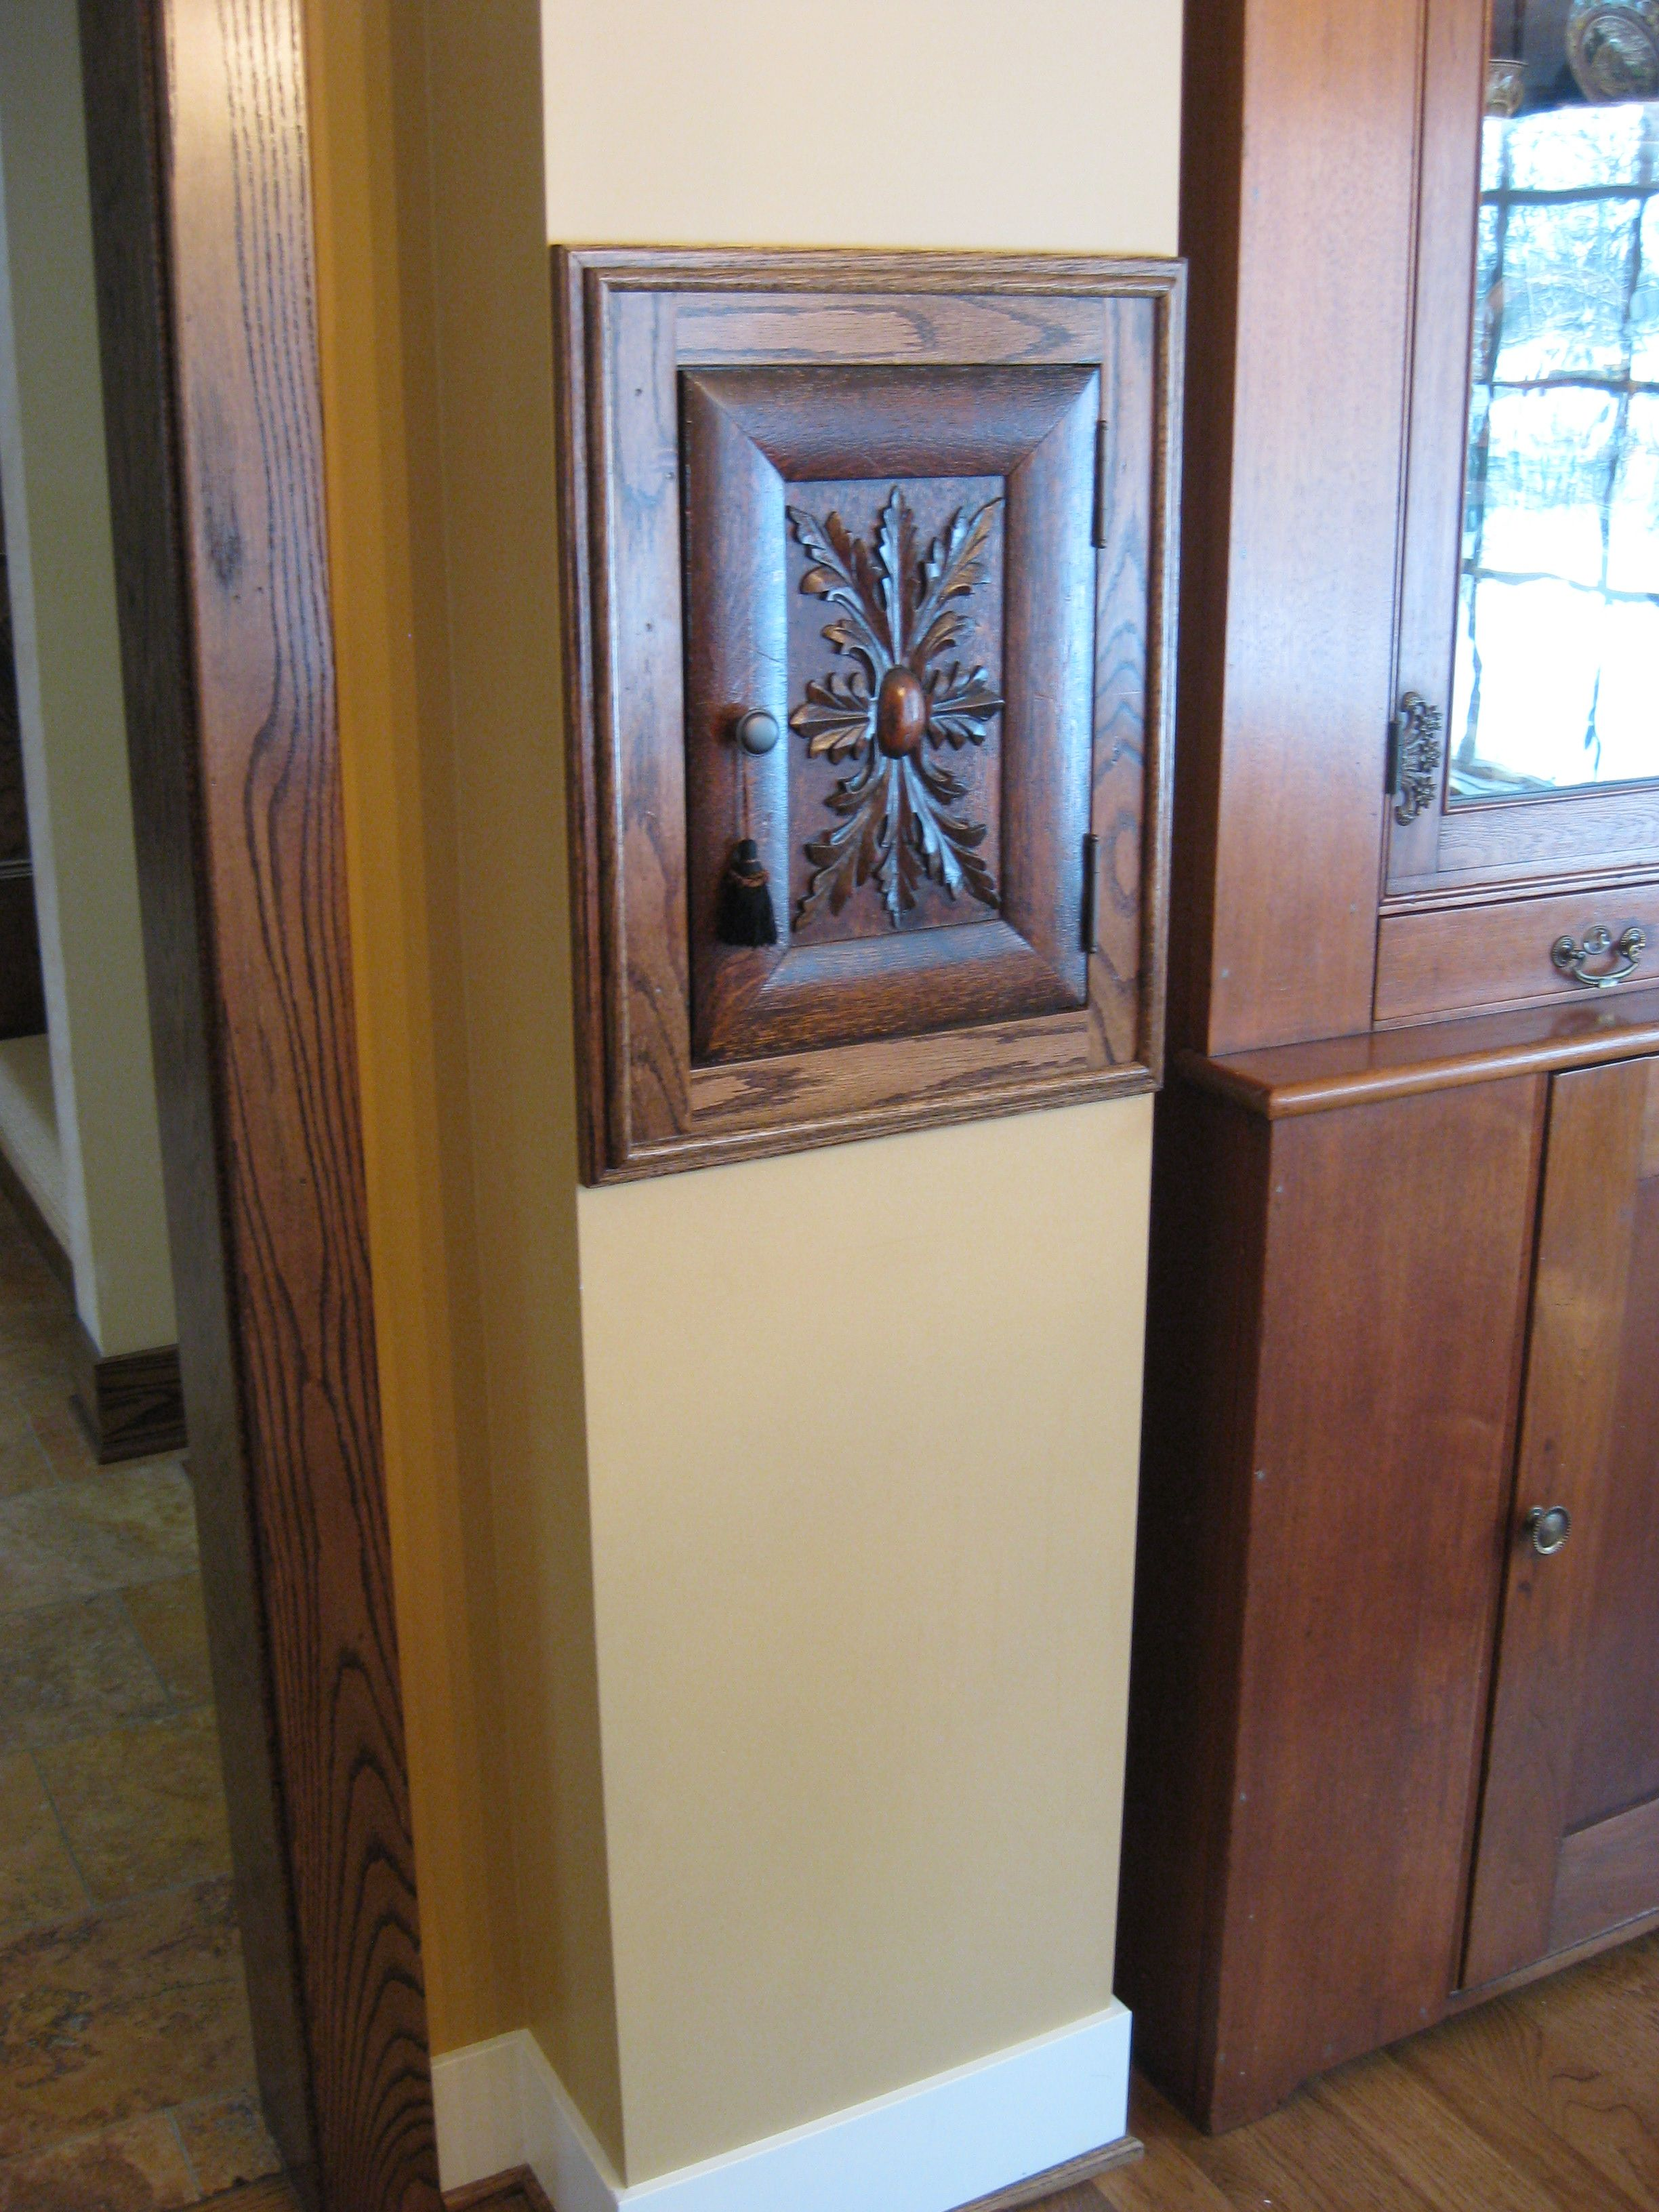 Laundry chute door salvaged from an old cabinet home for Laundry chute design